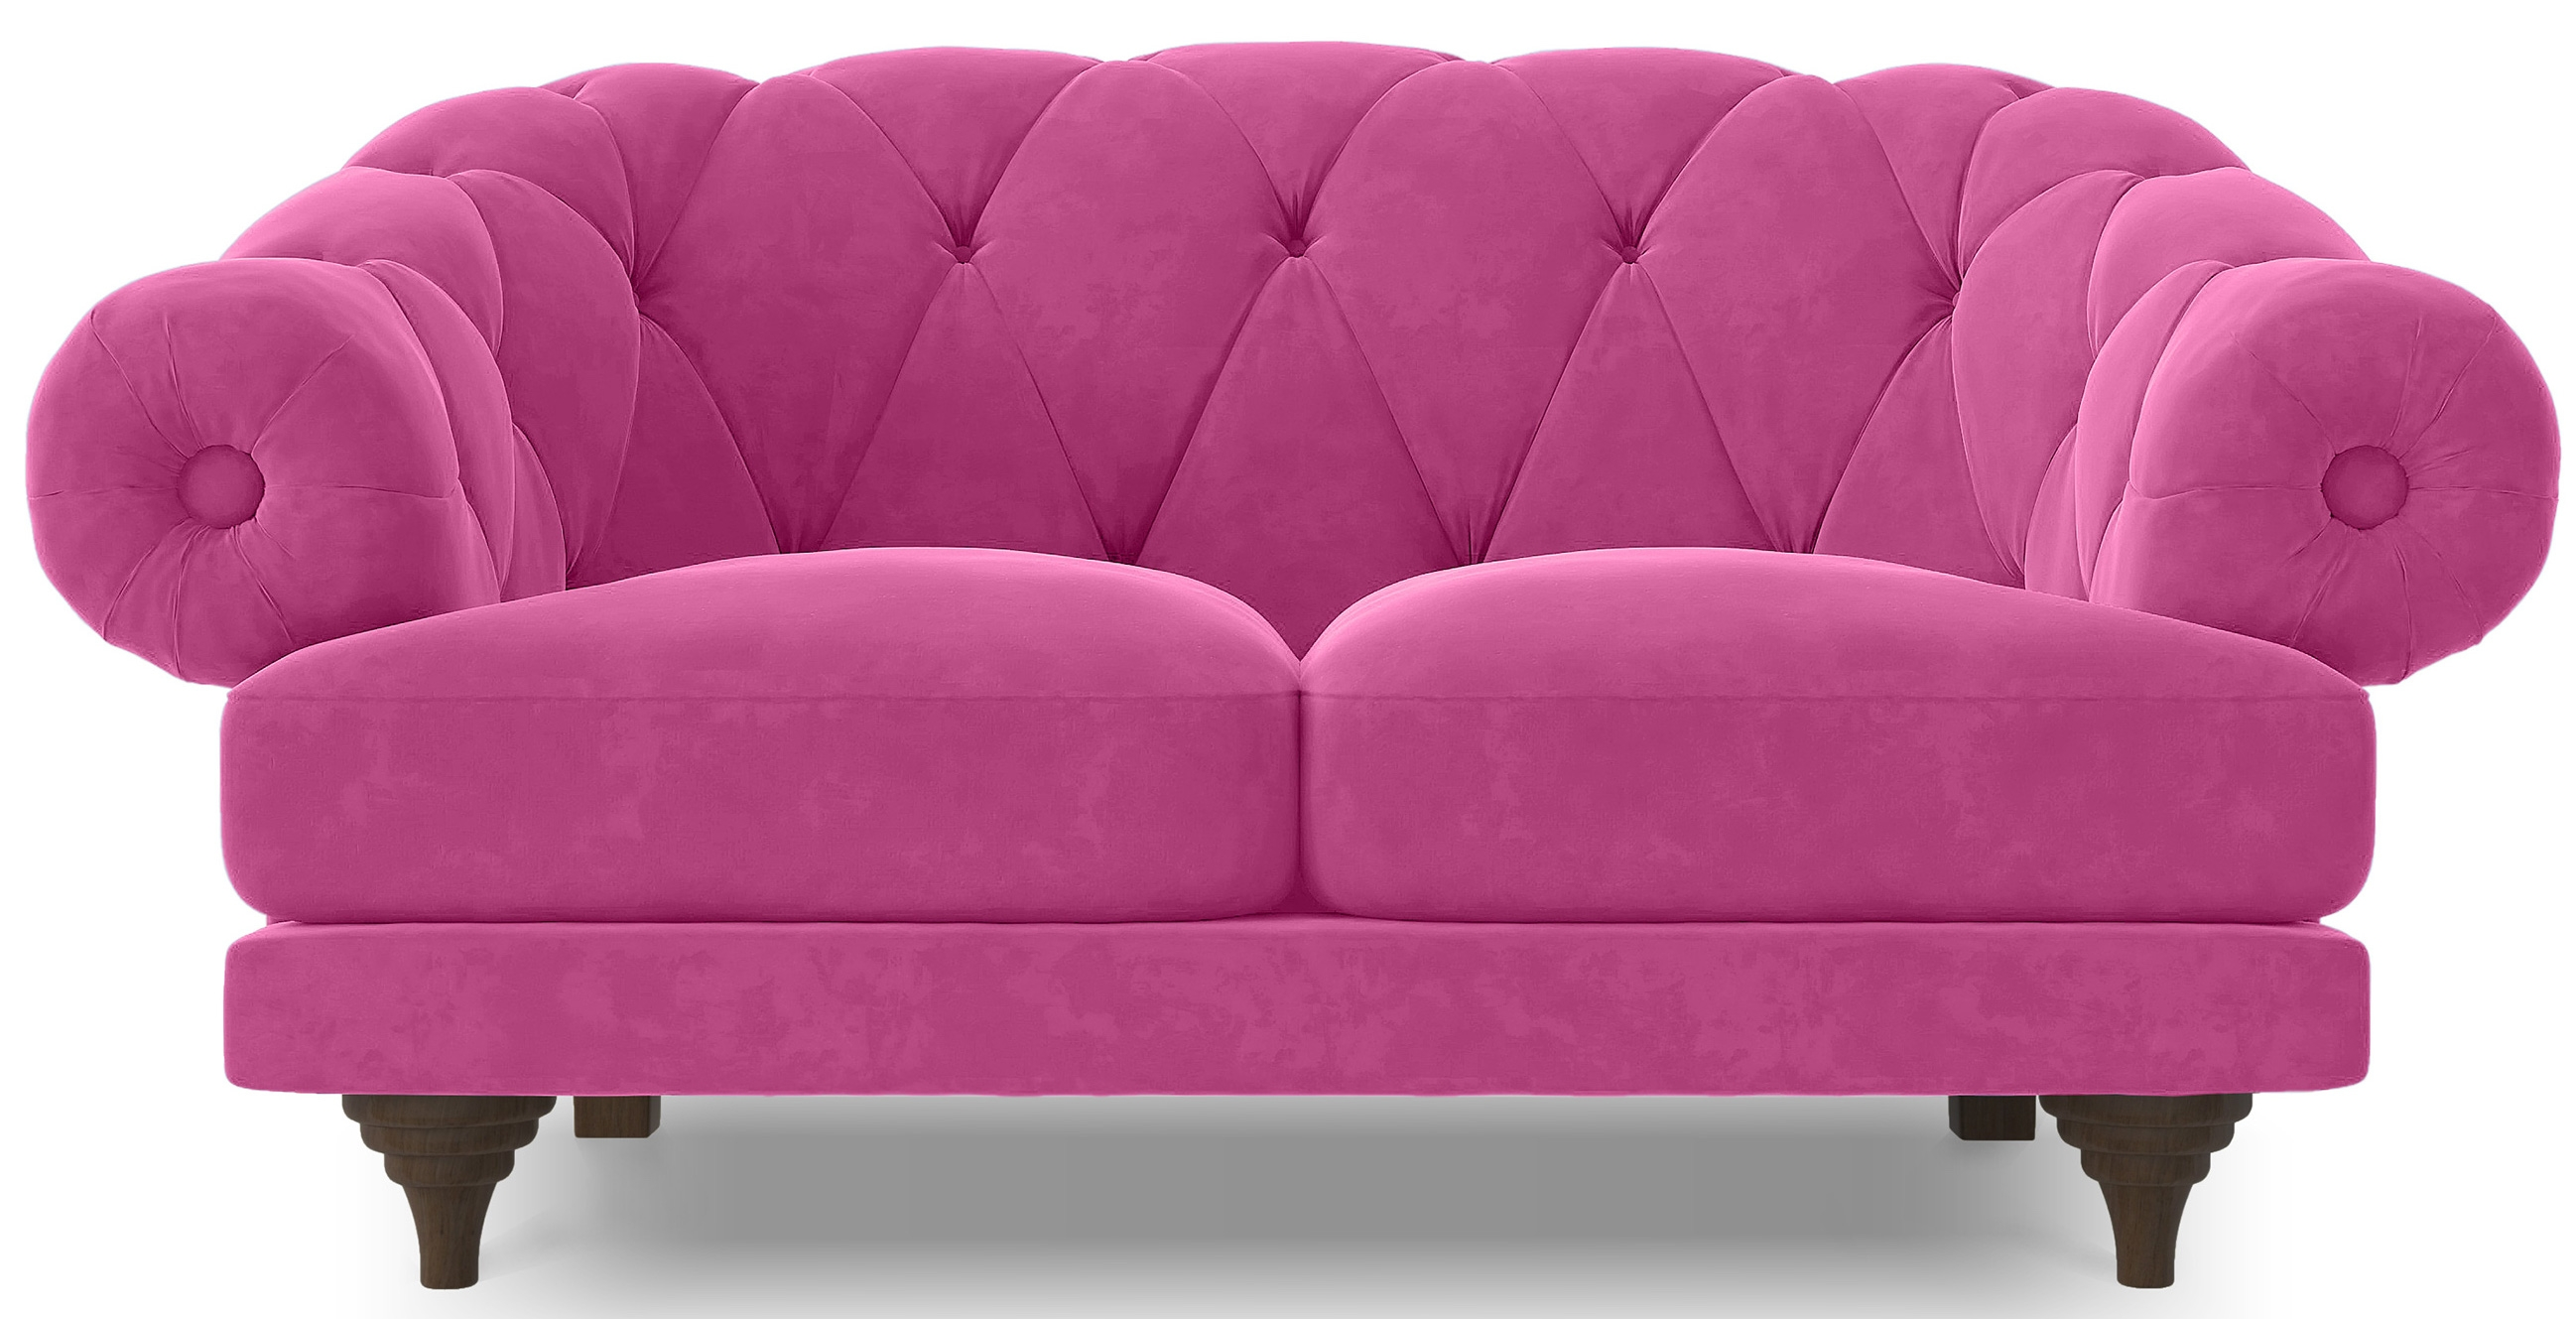 Canap ultra confortable velours rose chesterfield for Canape ultra confortable